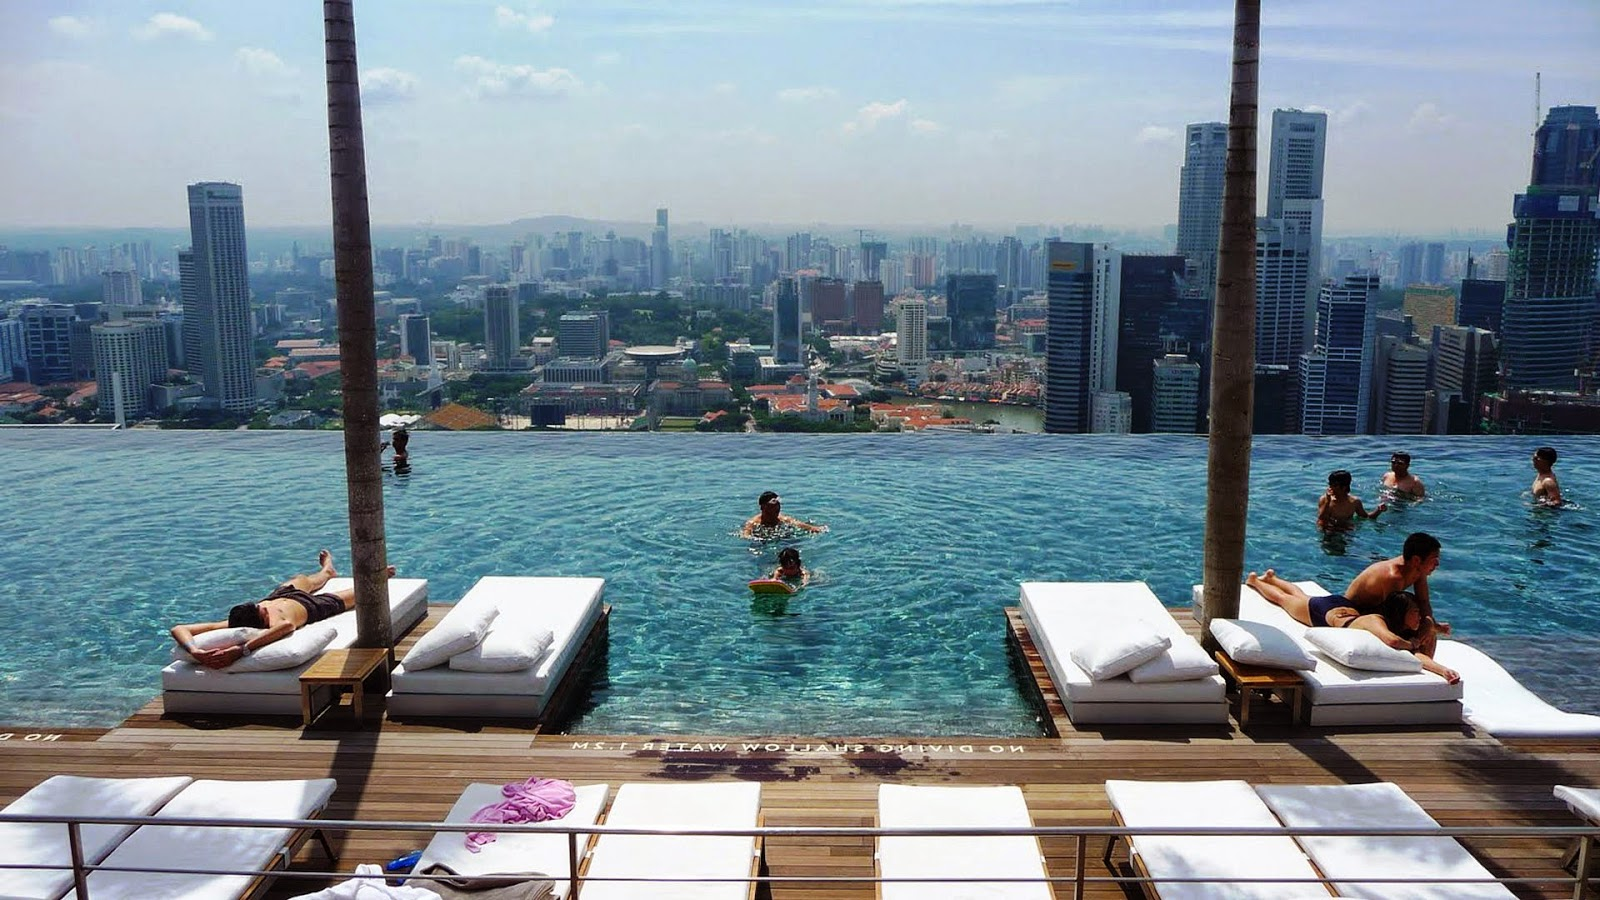 Enjoy the Comfort of Singapore Hotels at Marina Bay